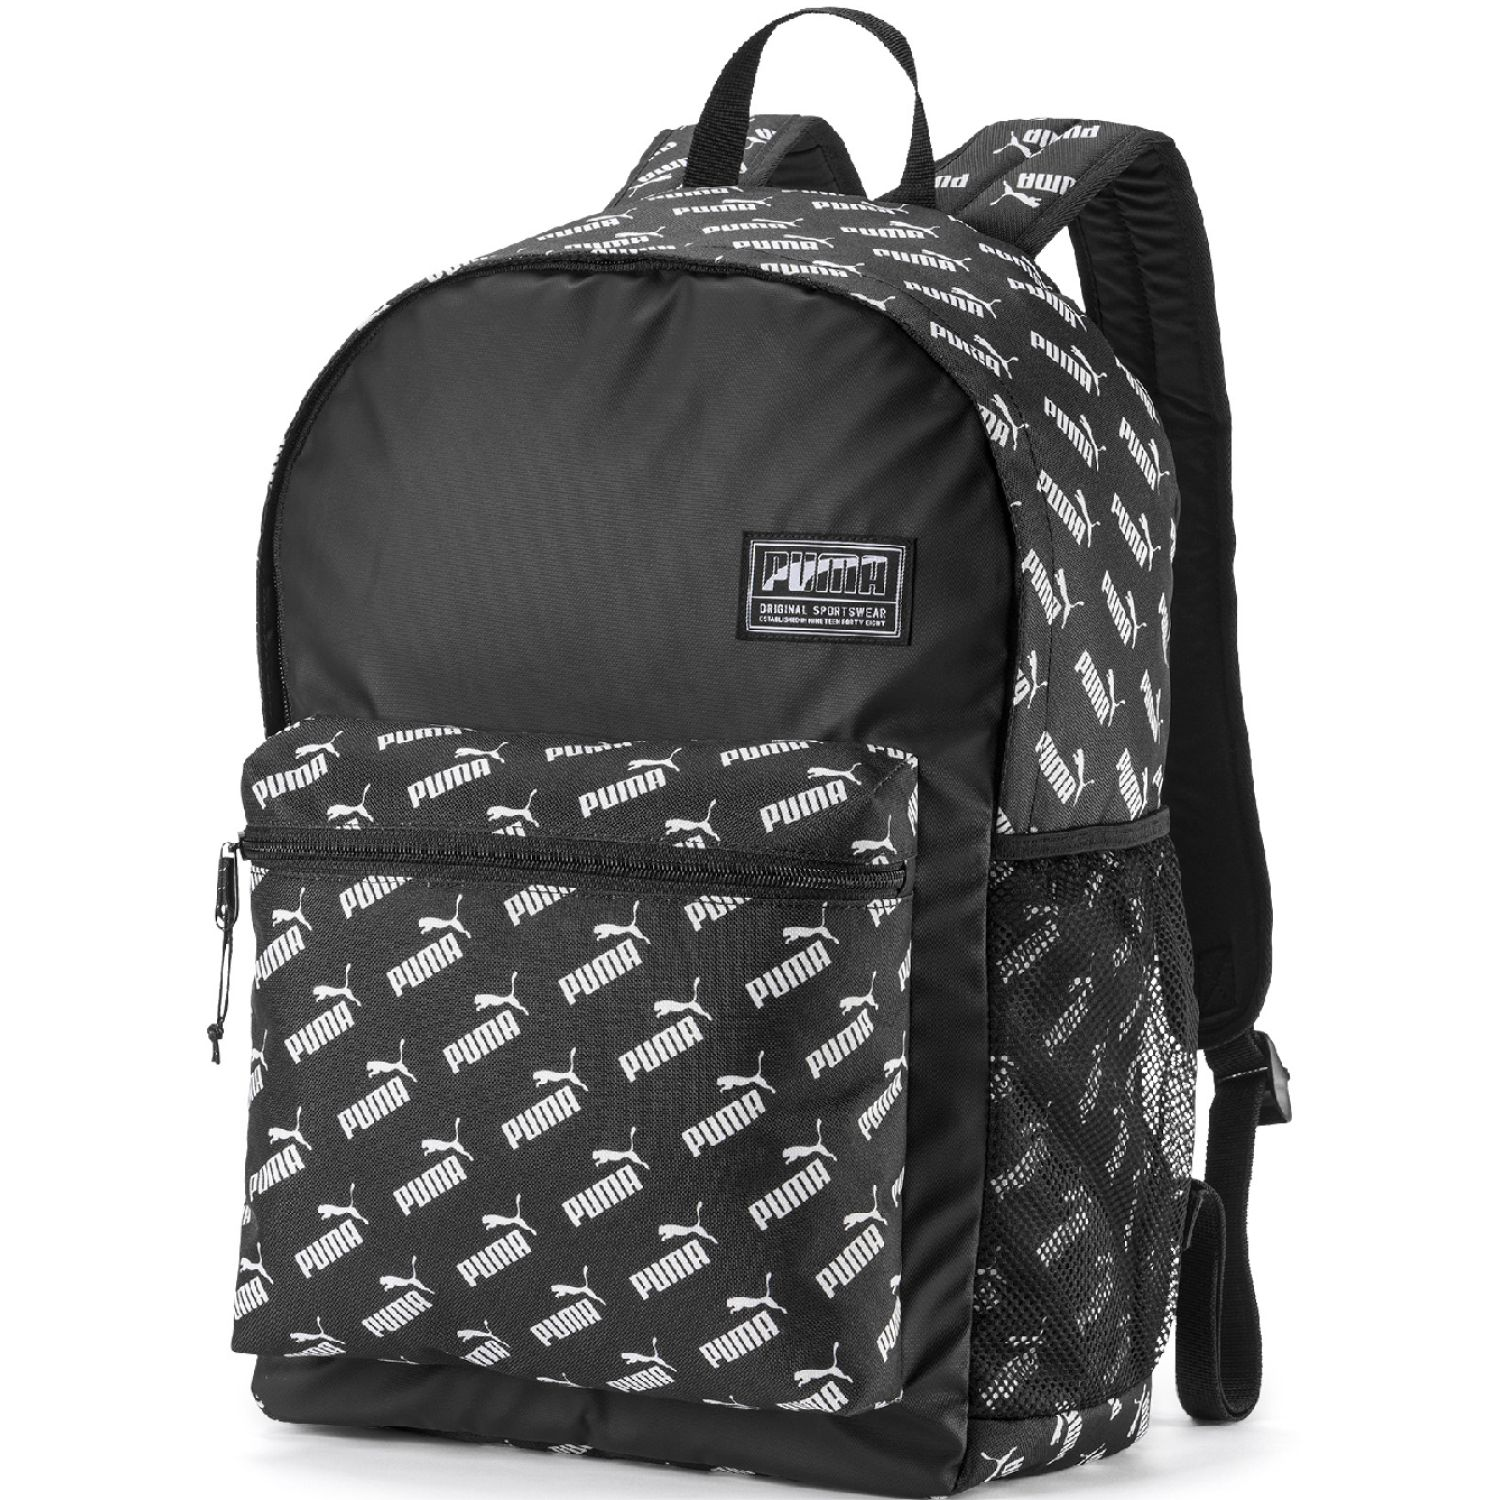 Puma Puma Academy Backpack Negro / rosado Mochilas multipropósitos